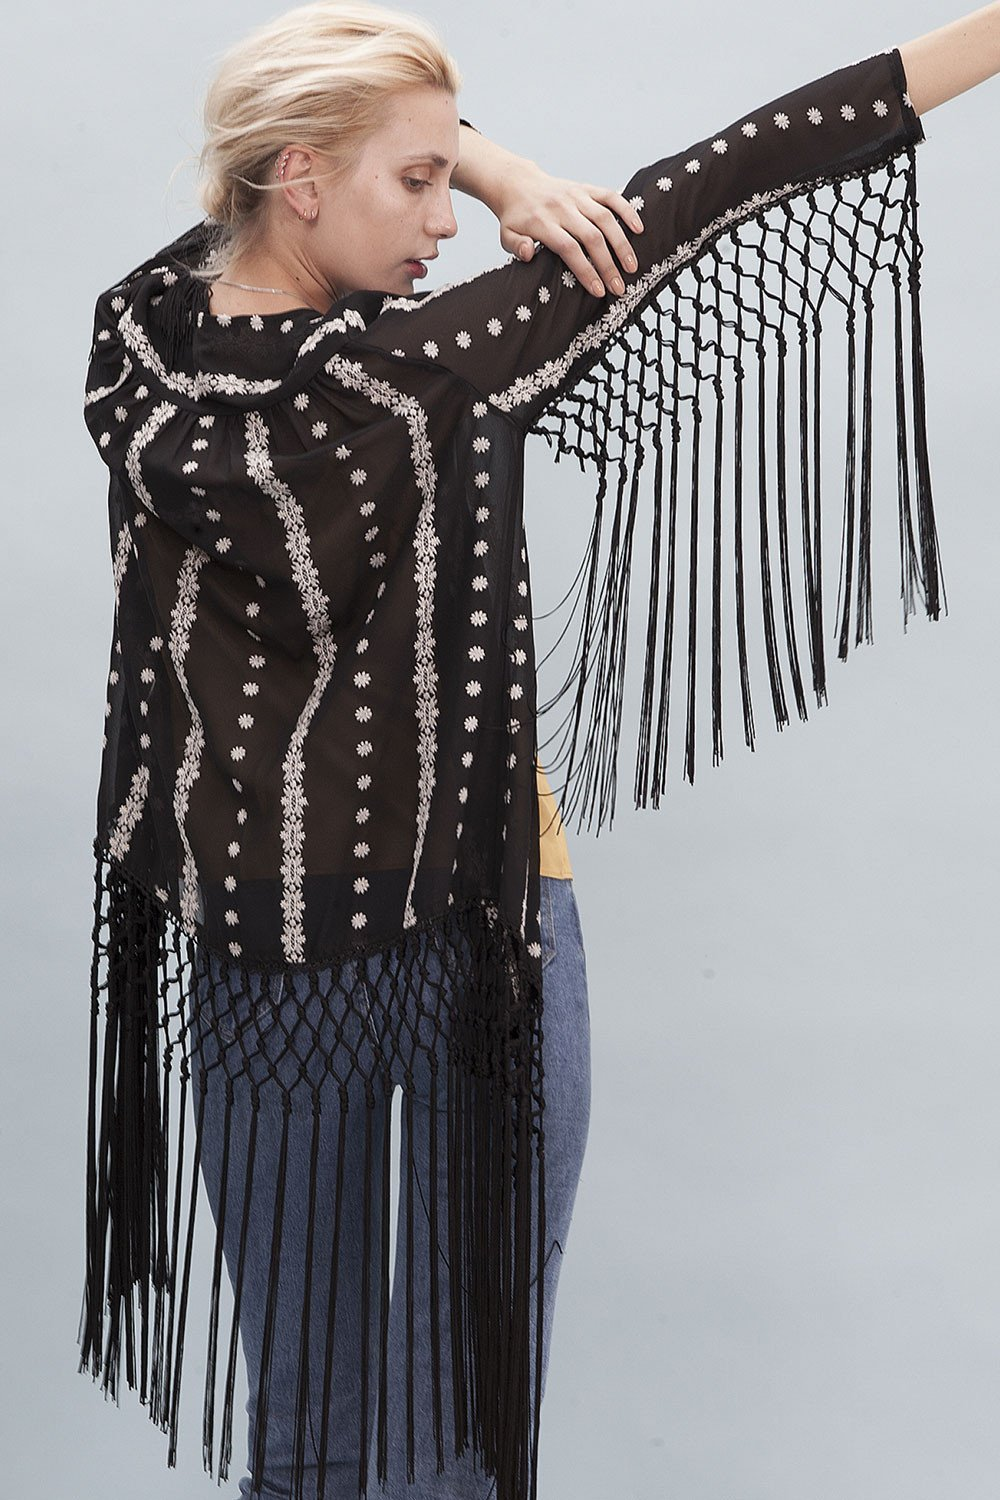 Shop Goldie Kimono Goldie Traveller Embroidered Black Kimono Jacket With Fringing Second Thread